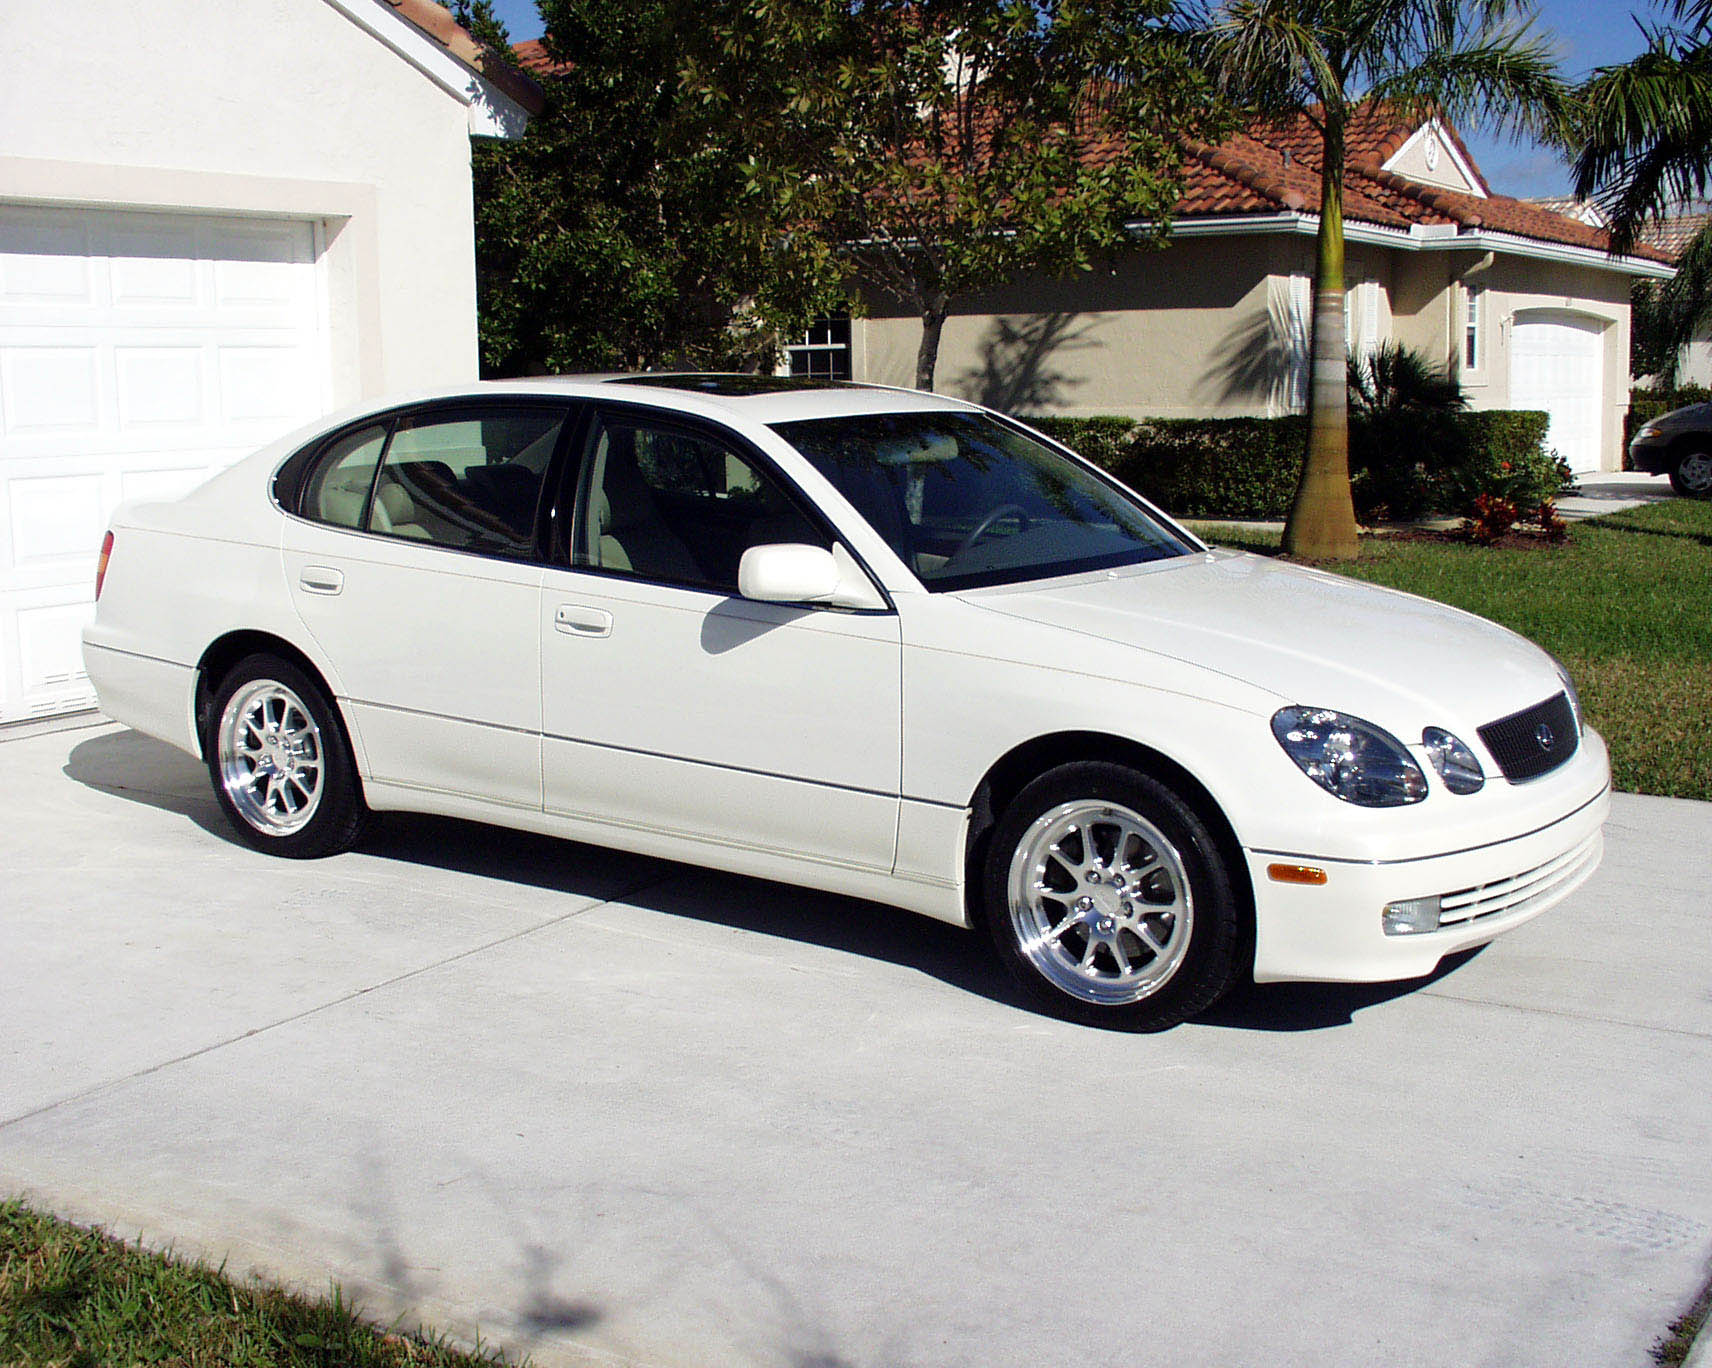 1999 lexus gs400 with fikse mach v wheels brooks 39 viper. Black Bedroom Furniture Sets. Home Design Ideas